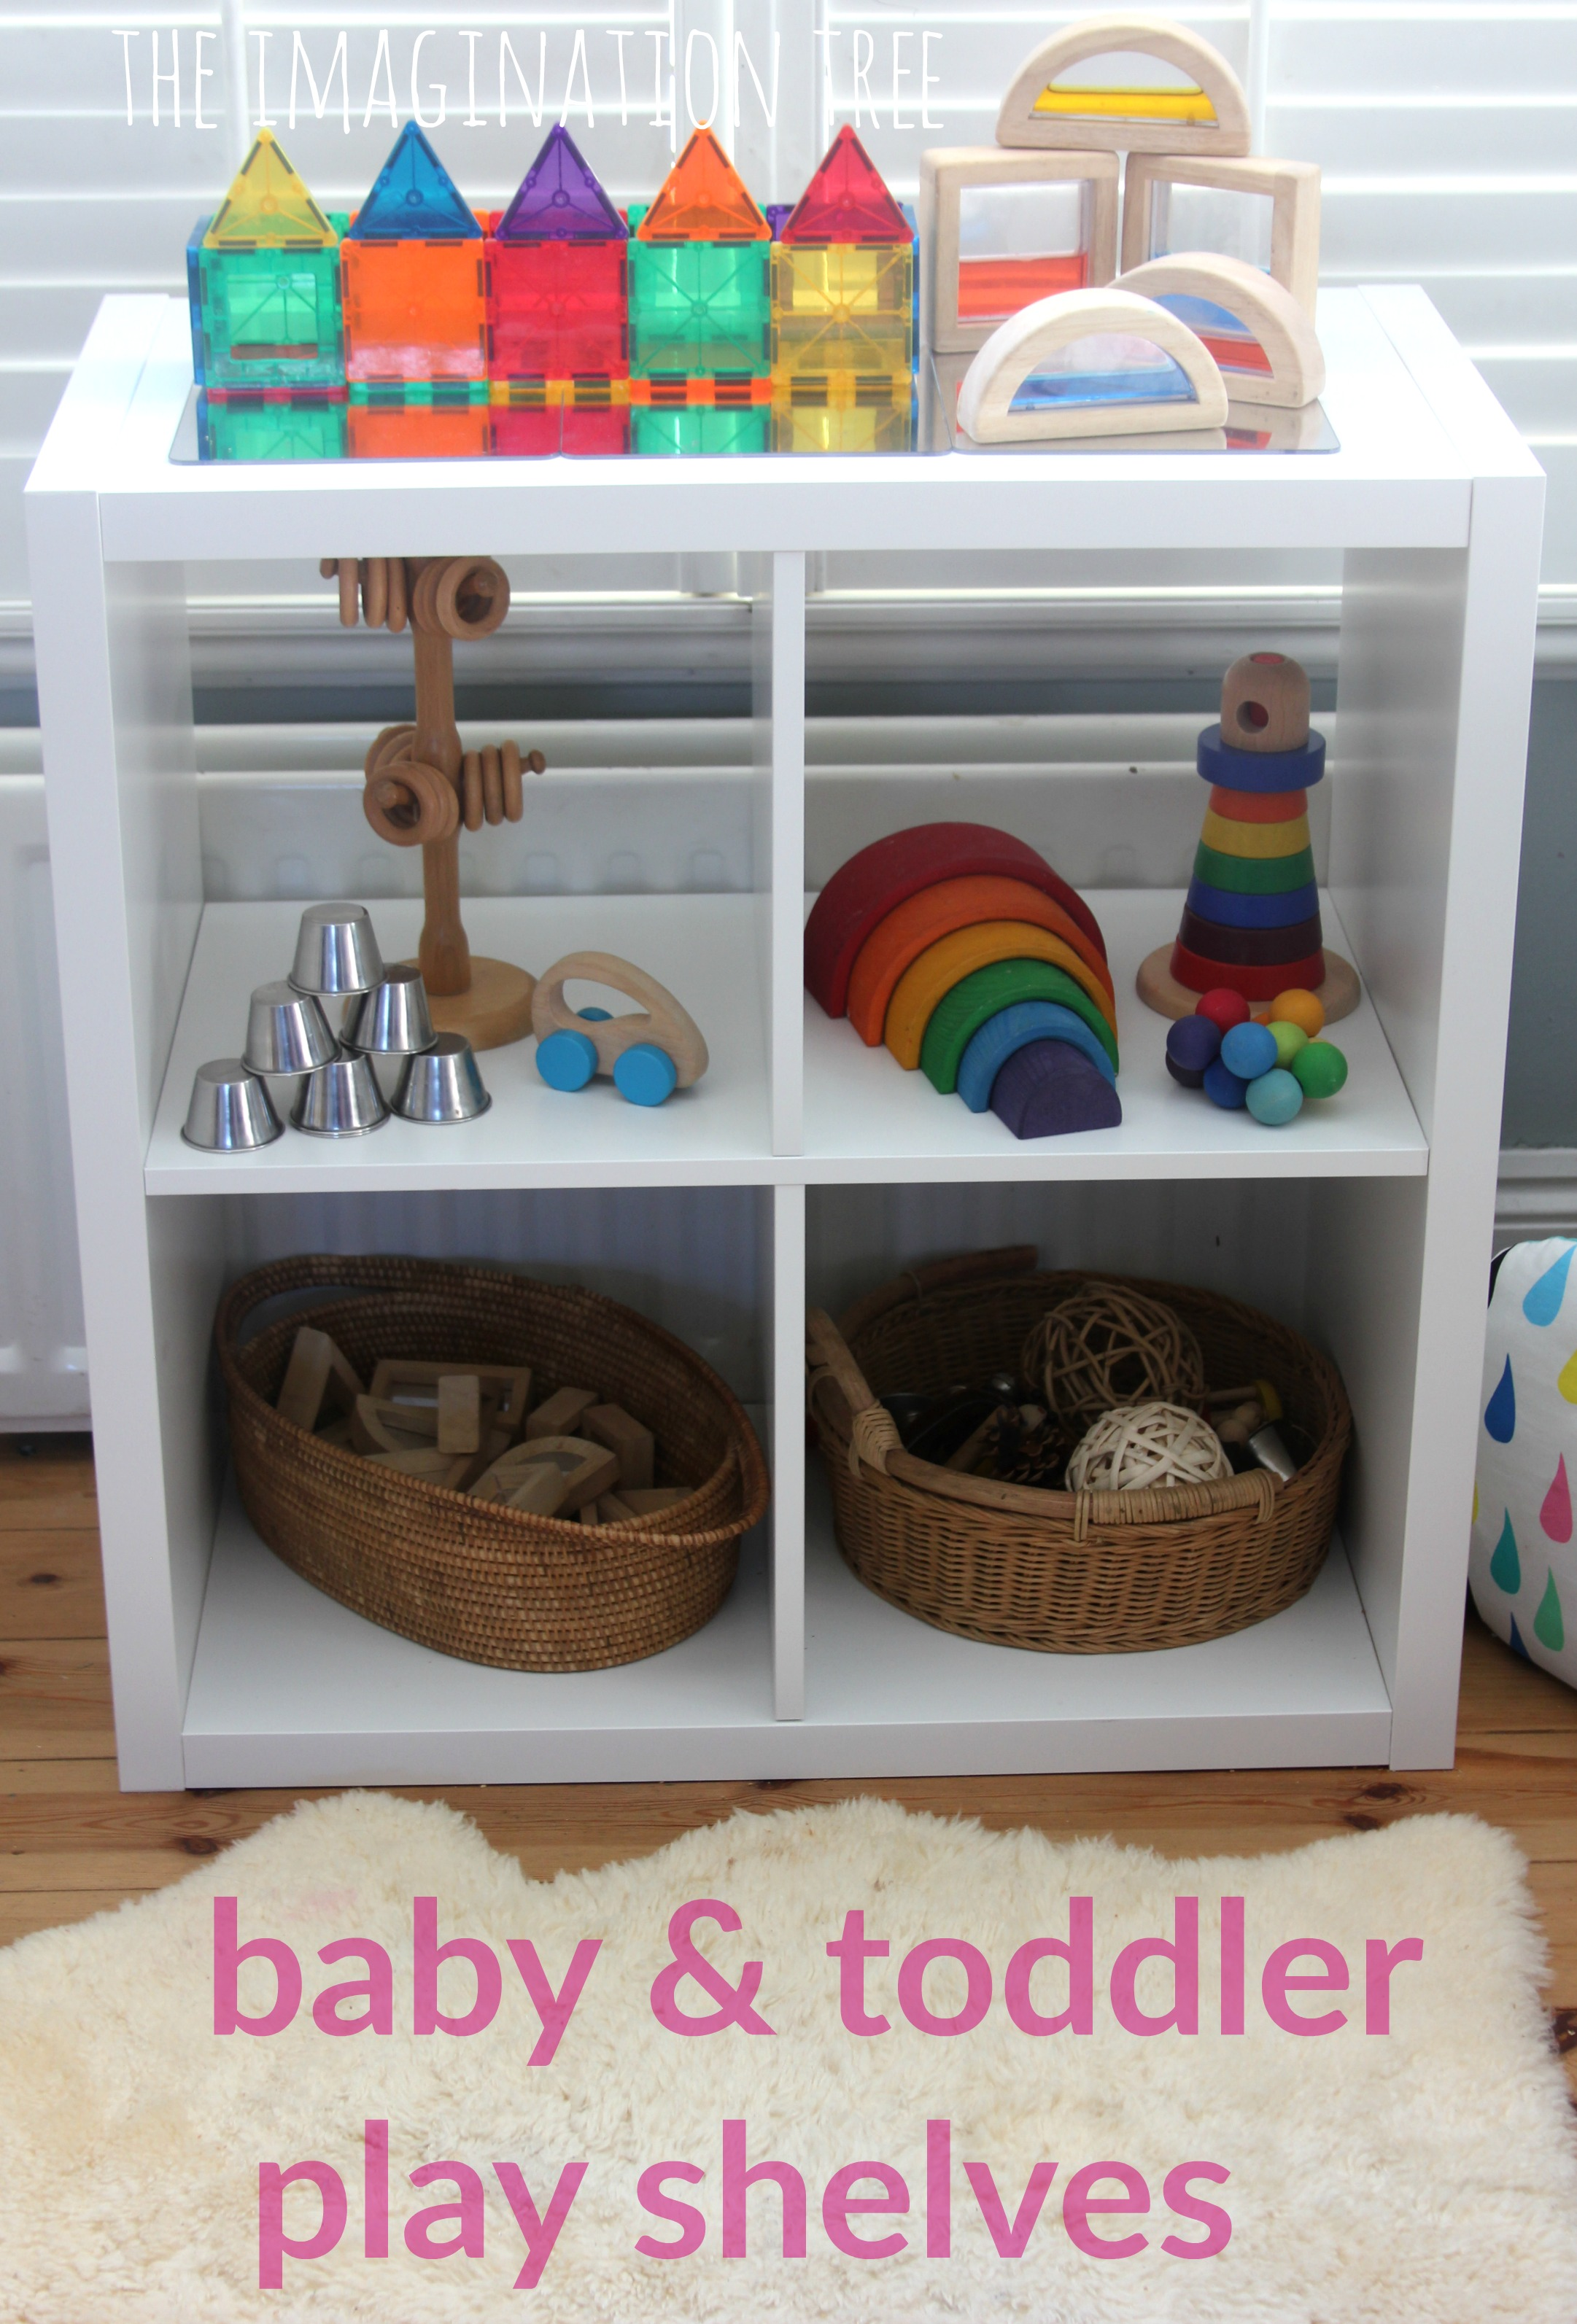 baby and toddler play shelves - the imagination tree